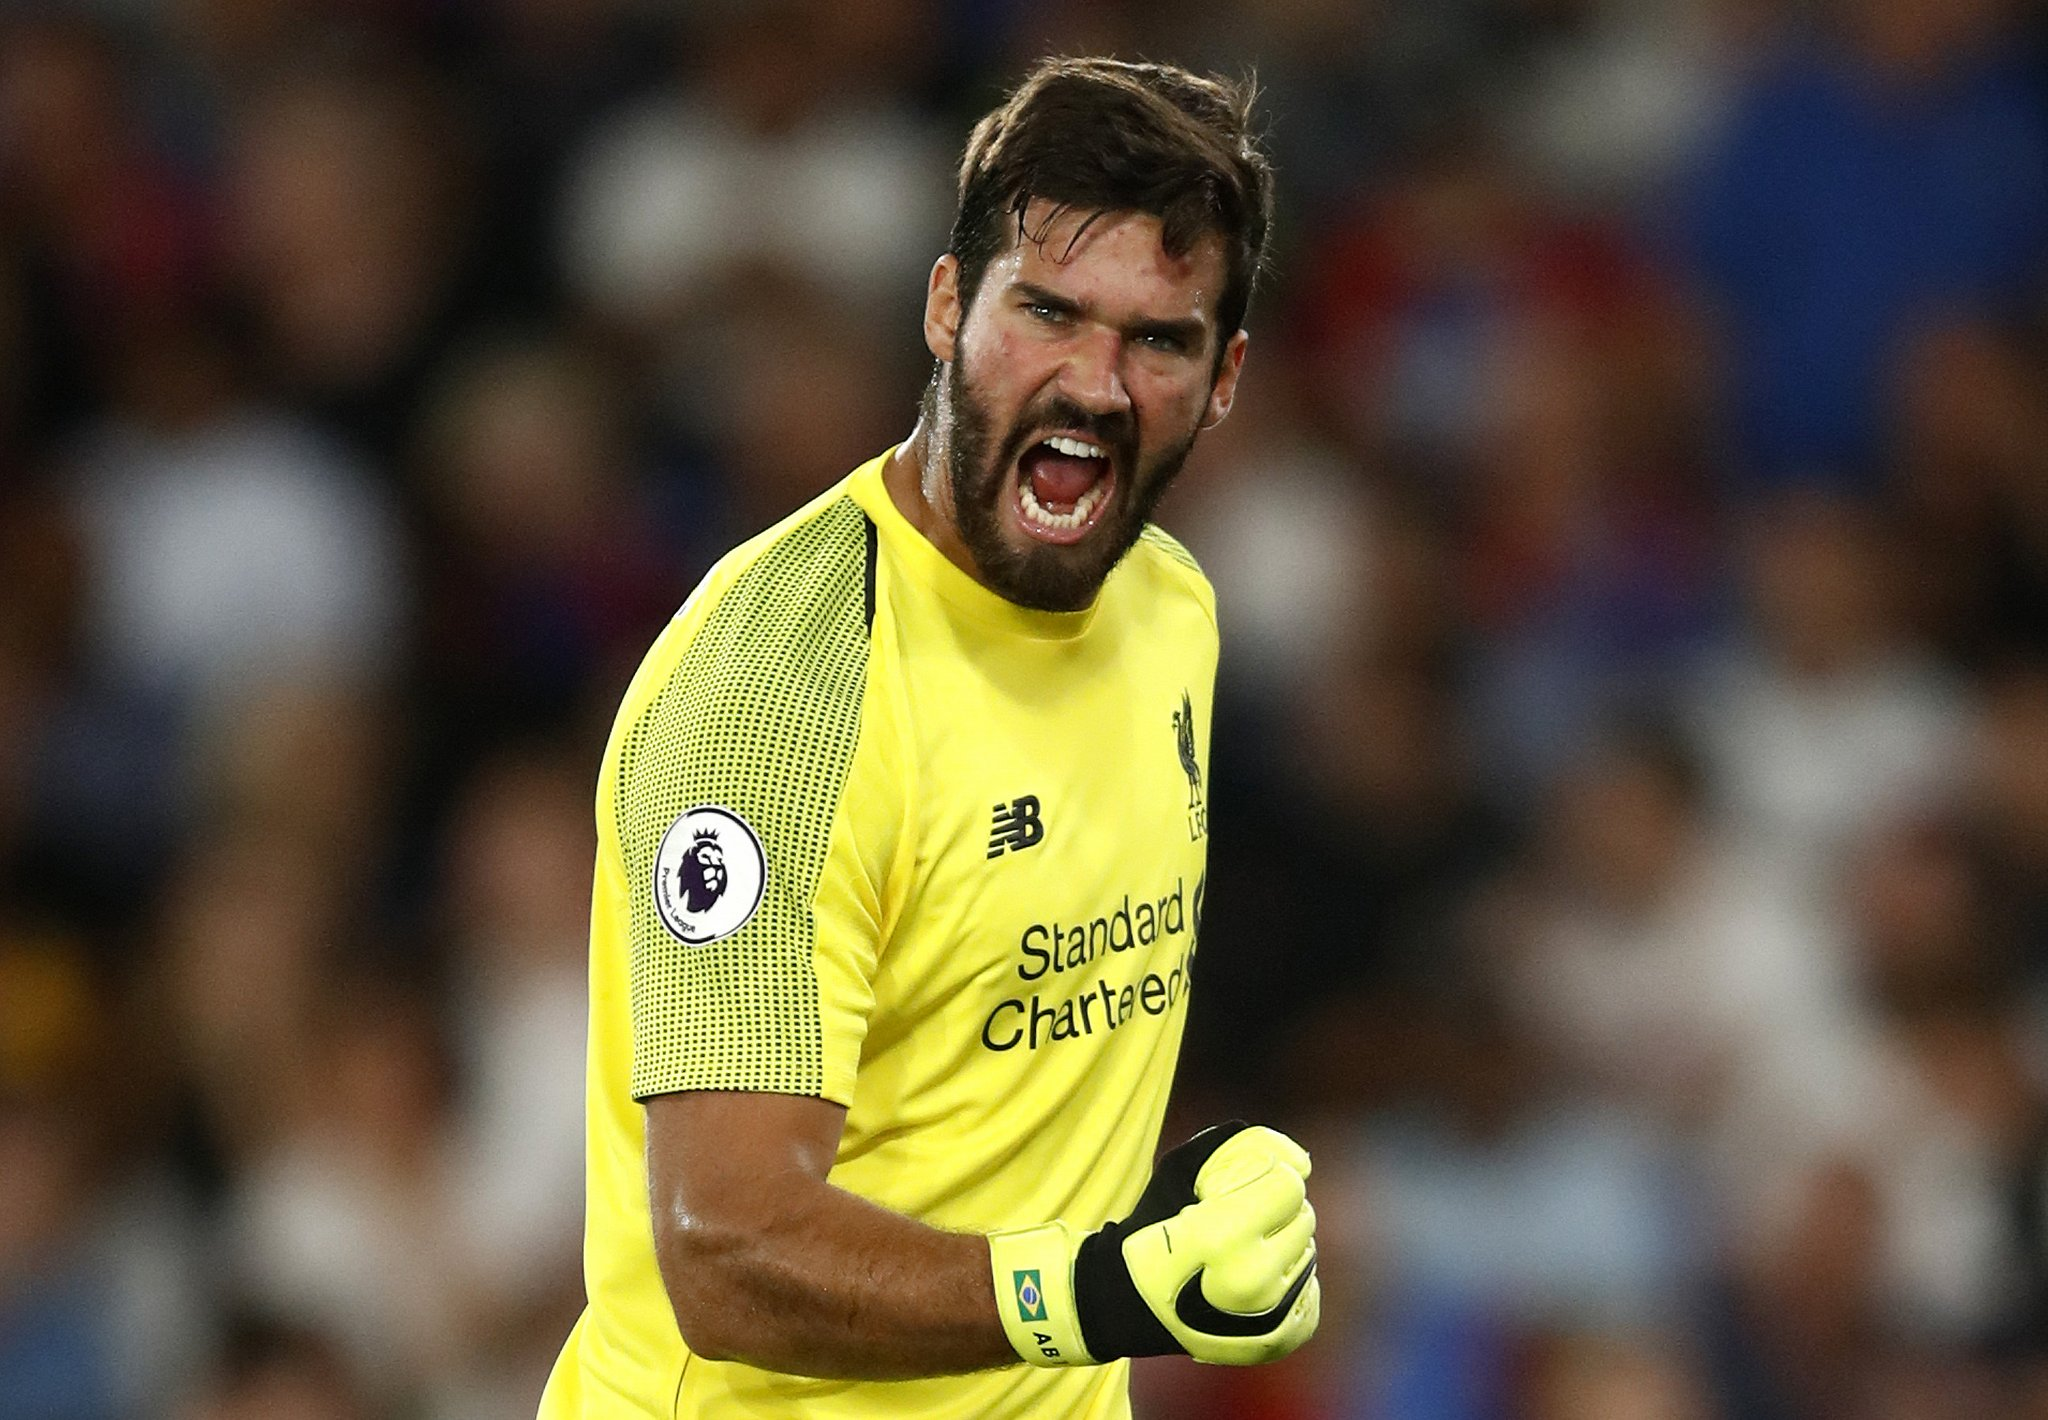 Alisson becker liverpool footballer foursome sextape part 2 - 2 3